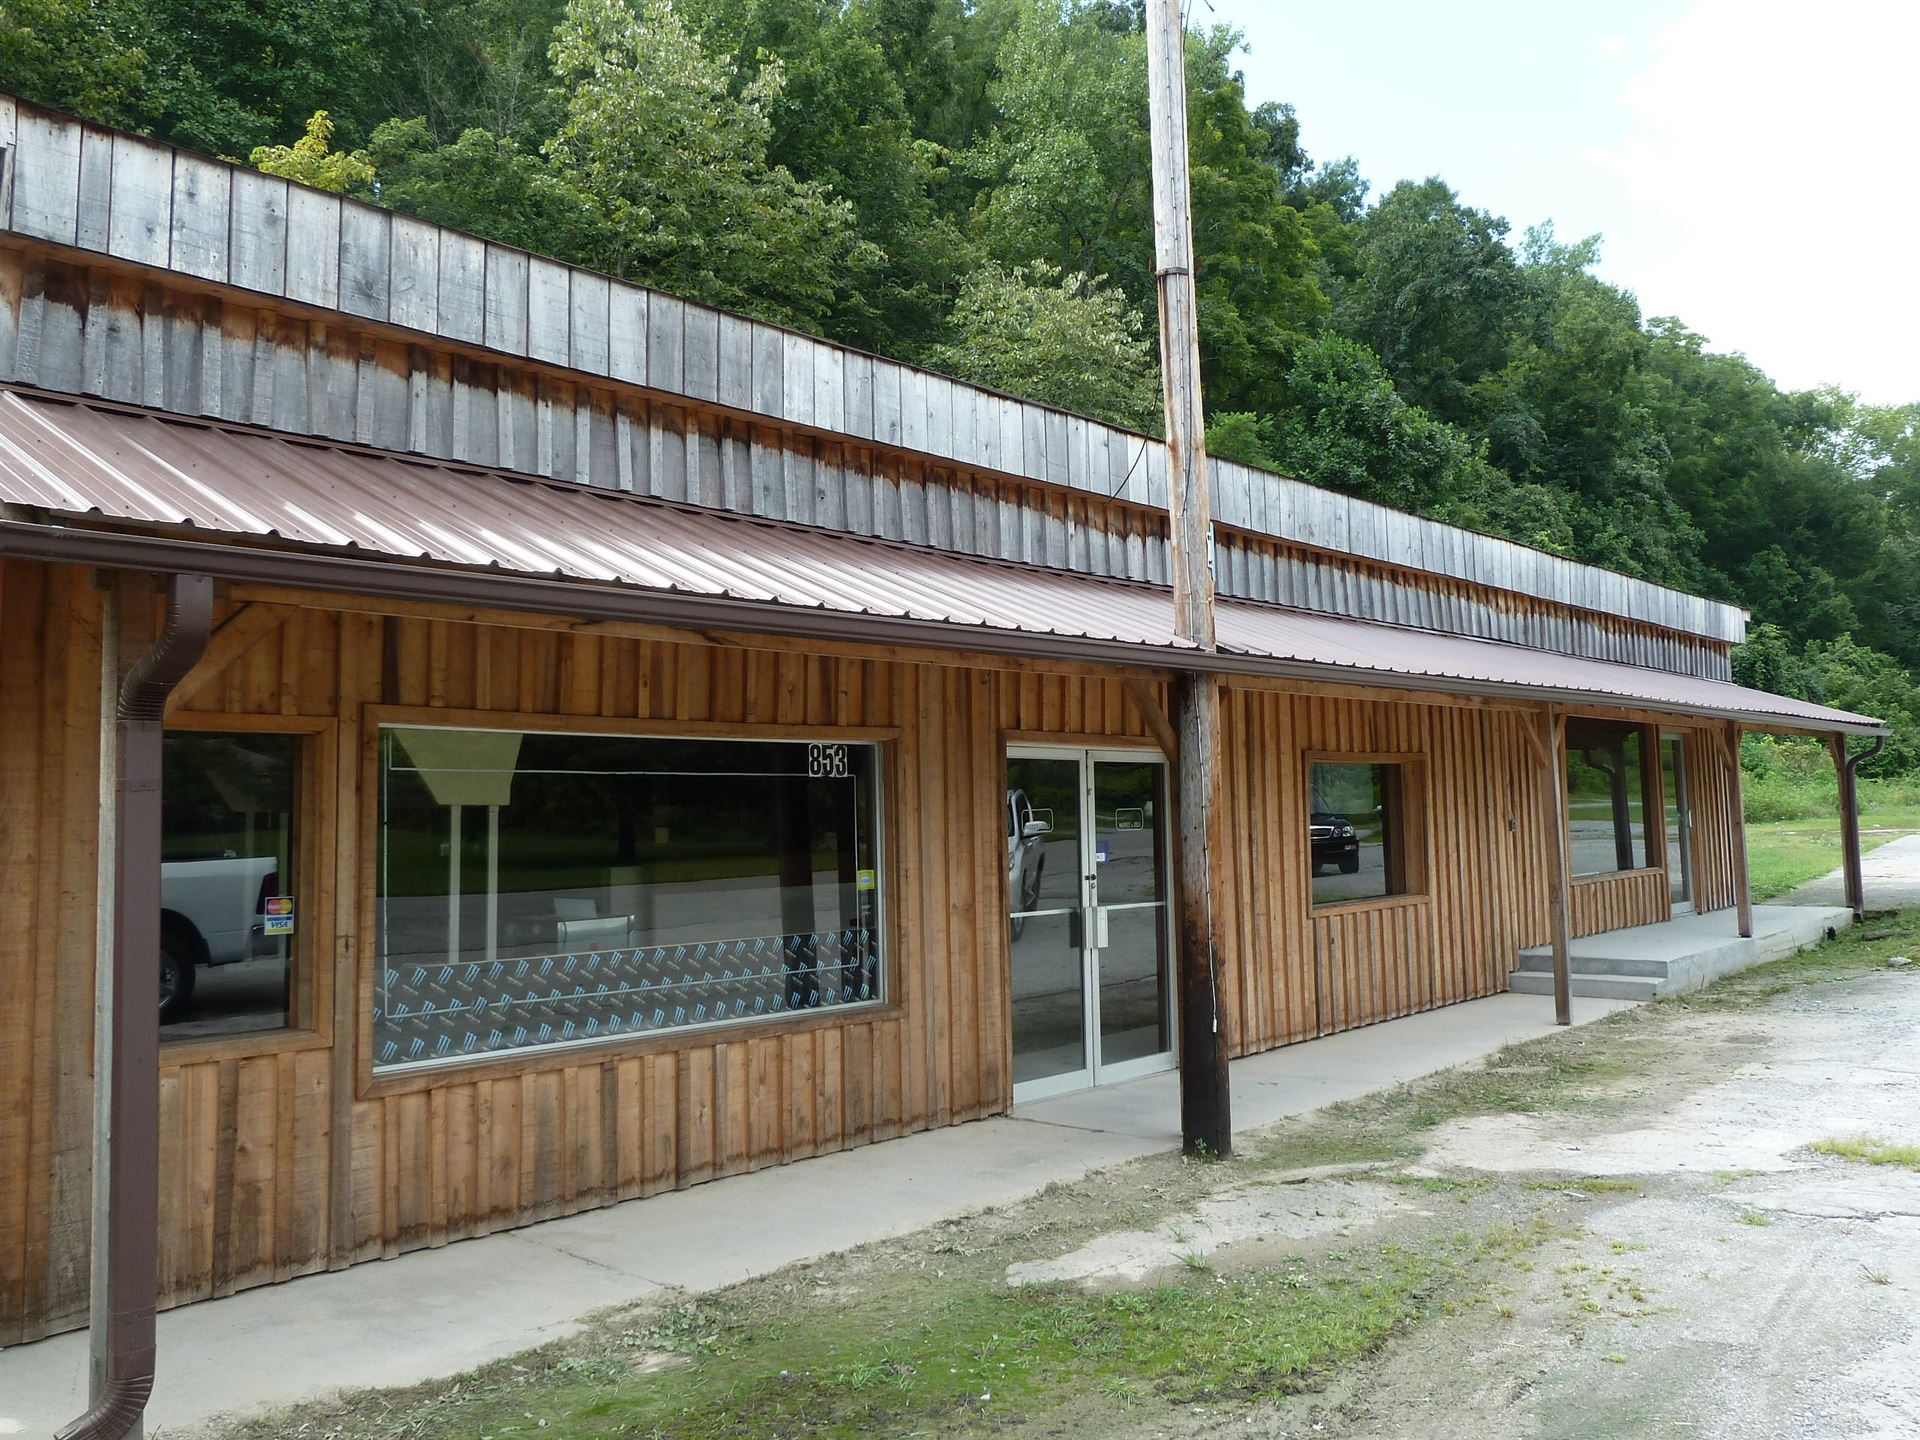 Photo of 853 E Wolf Valley Rd, Heiskell, TN 37754 (MLS # 1133105)